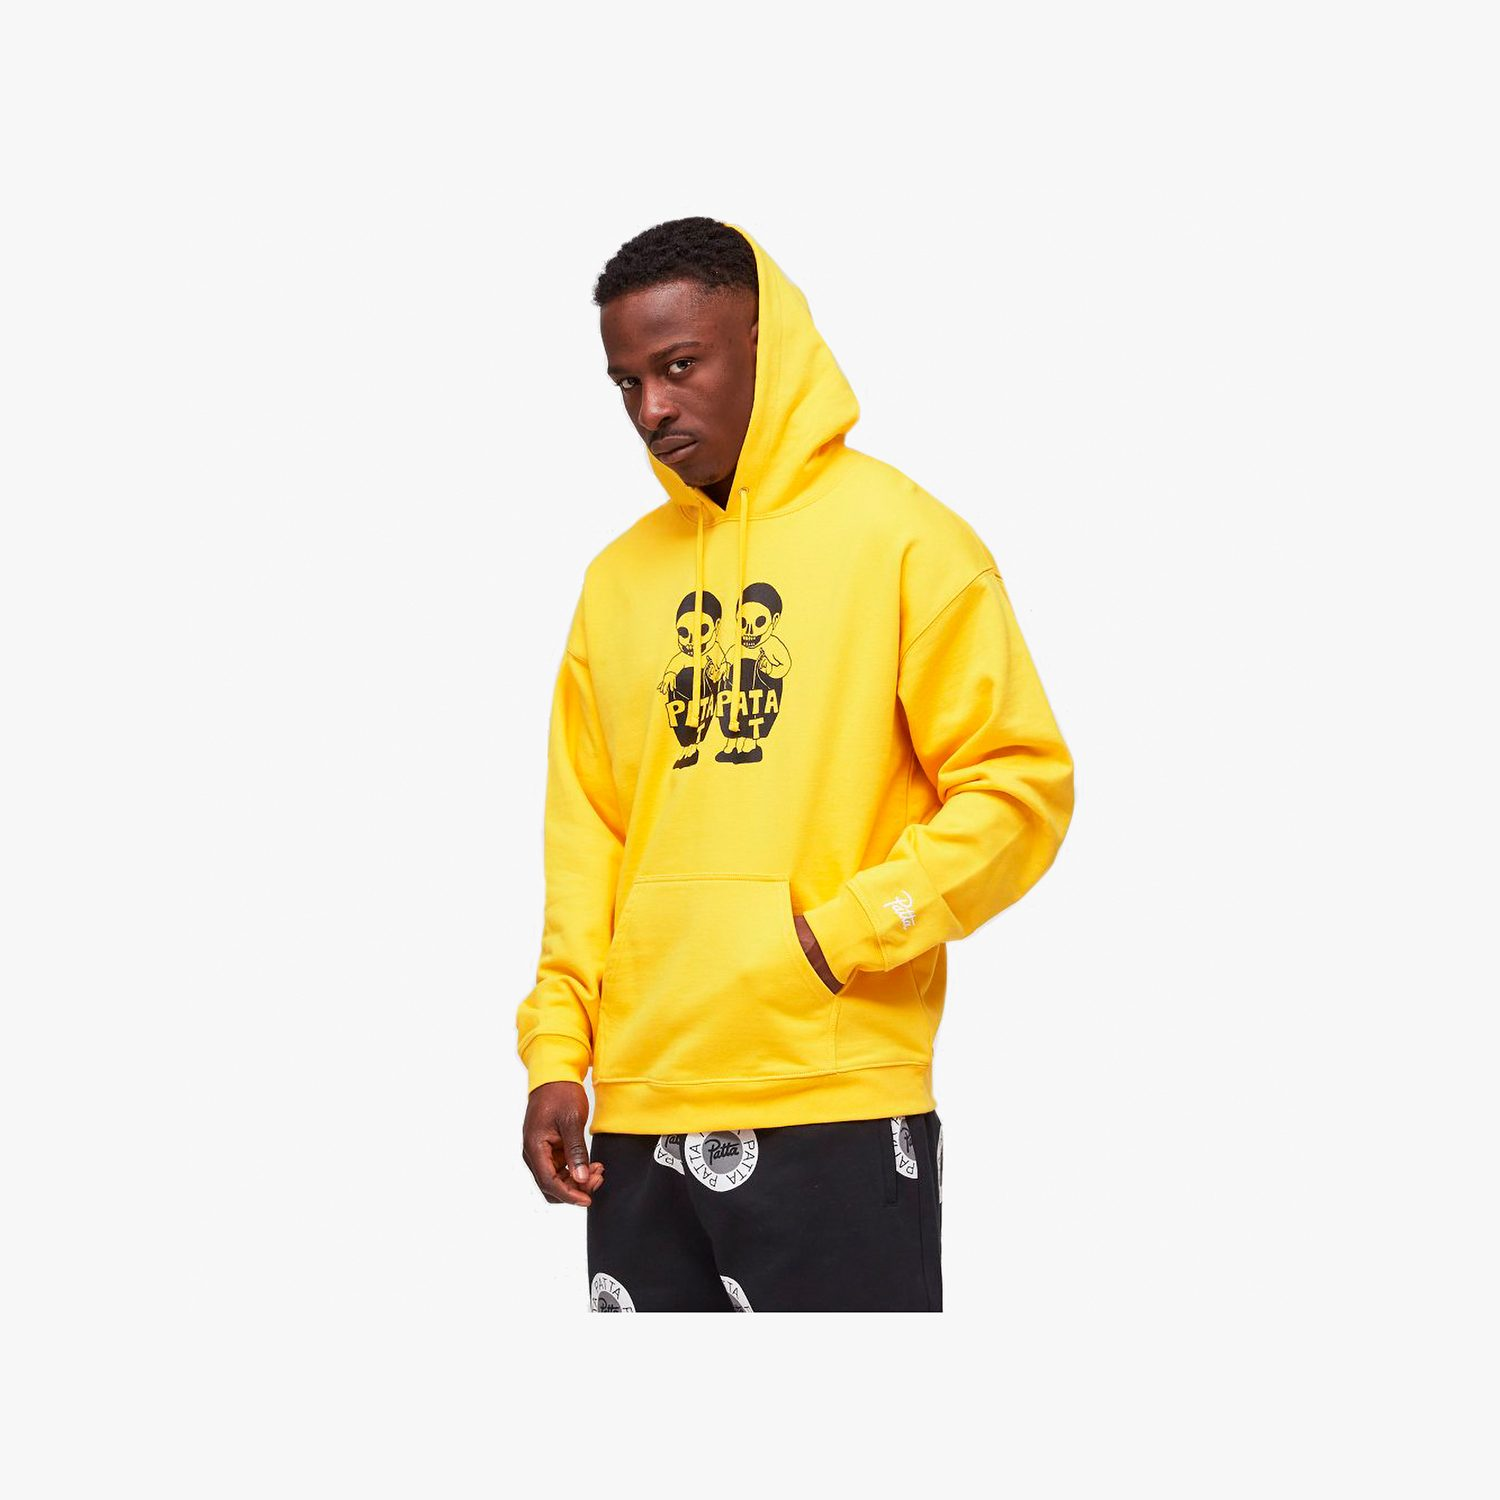 Patta Baby Hooded Sweater (Spectra Yellow)